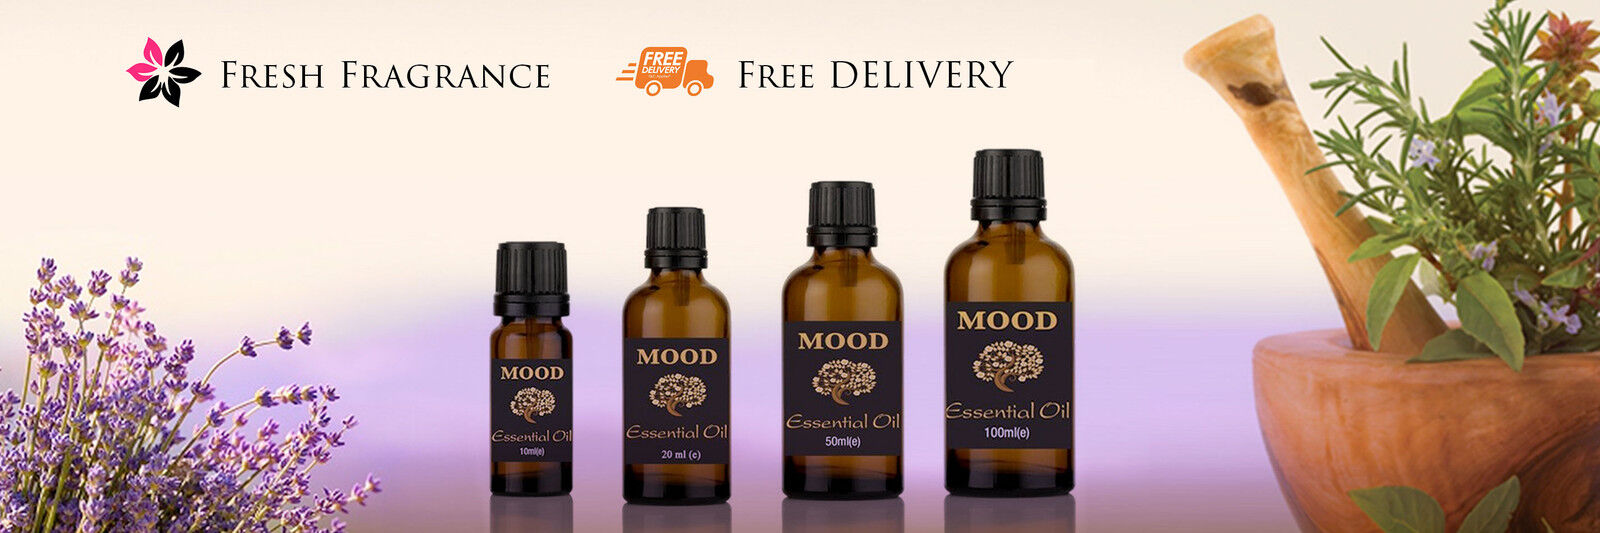 Mood Essential Oils